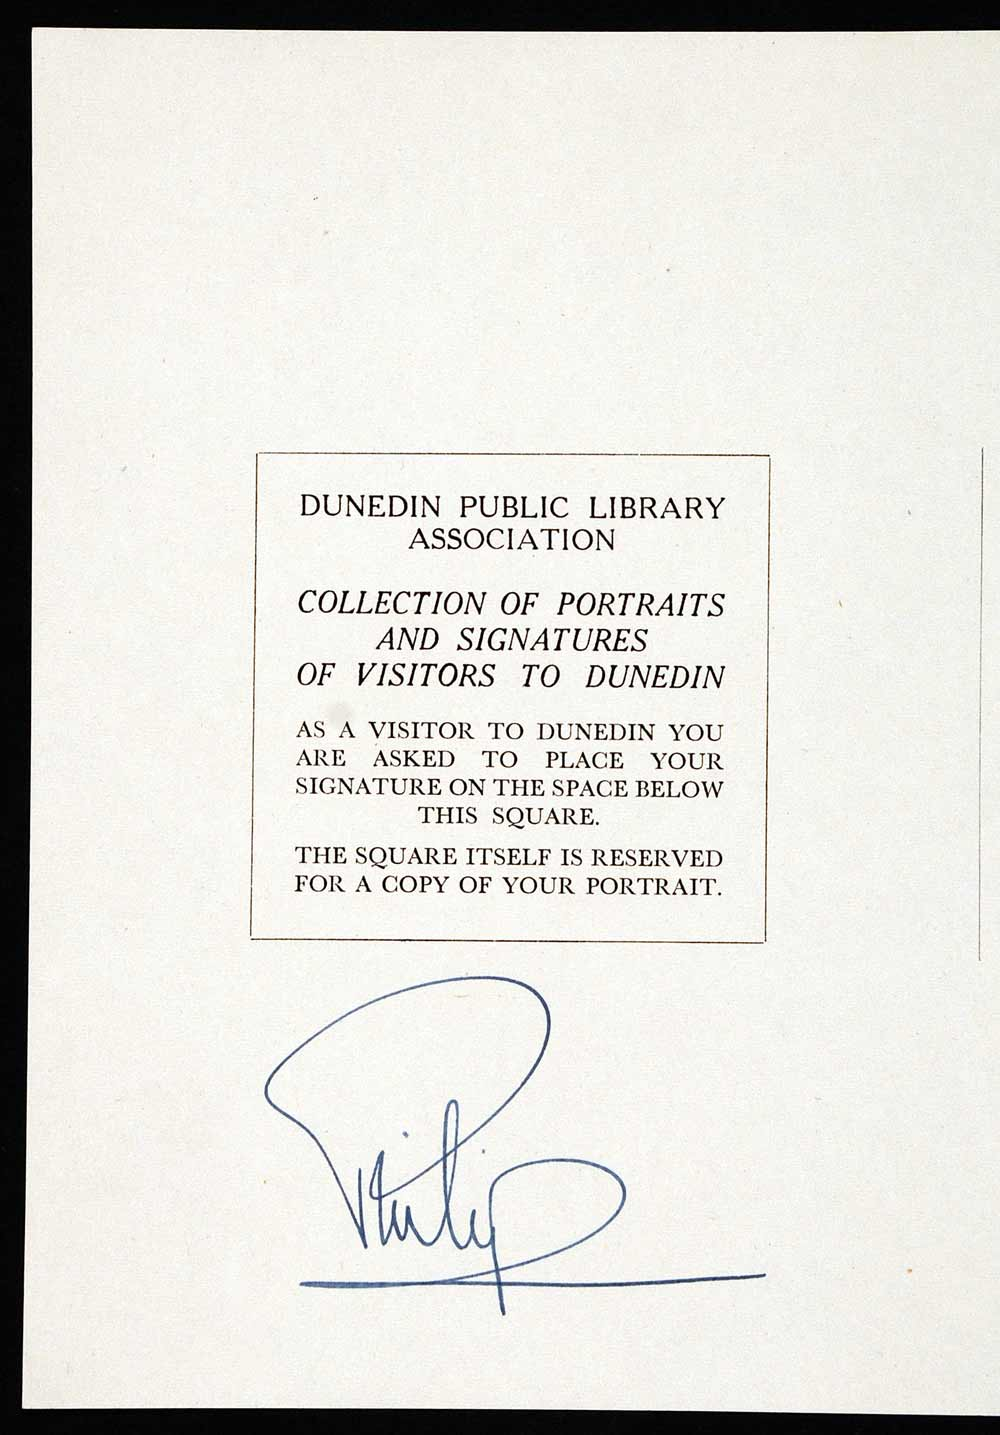 Page from the Dunedin Public Library visitor's book, signed by Prince Philip, Duke of Edinburgh, 26 January 1954.